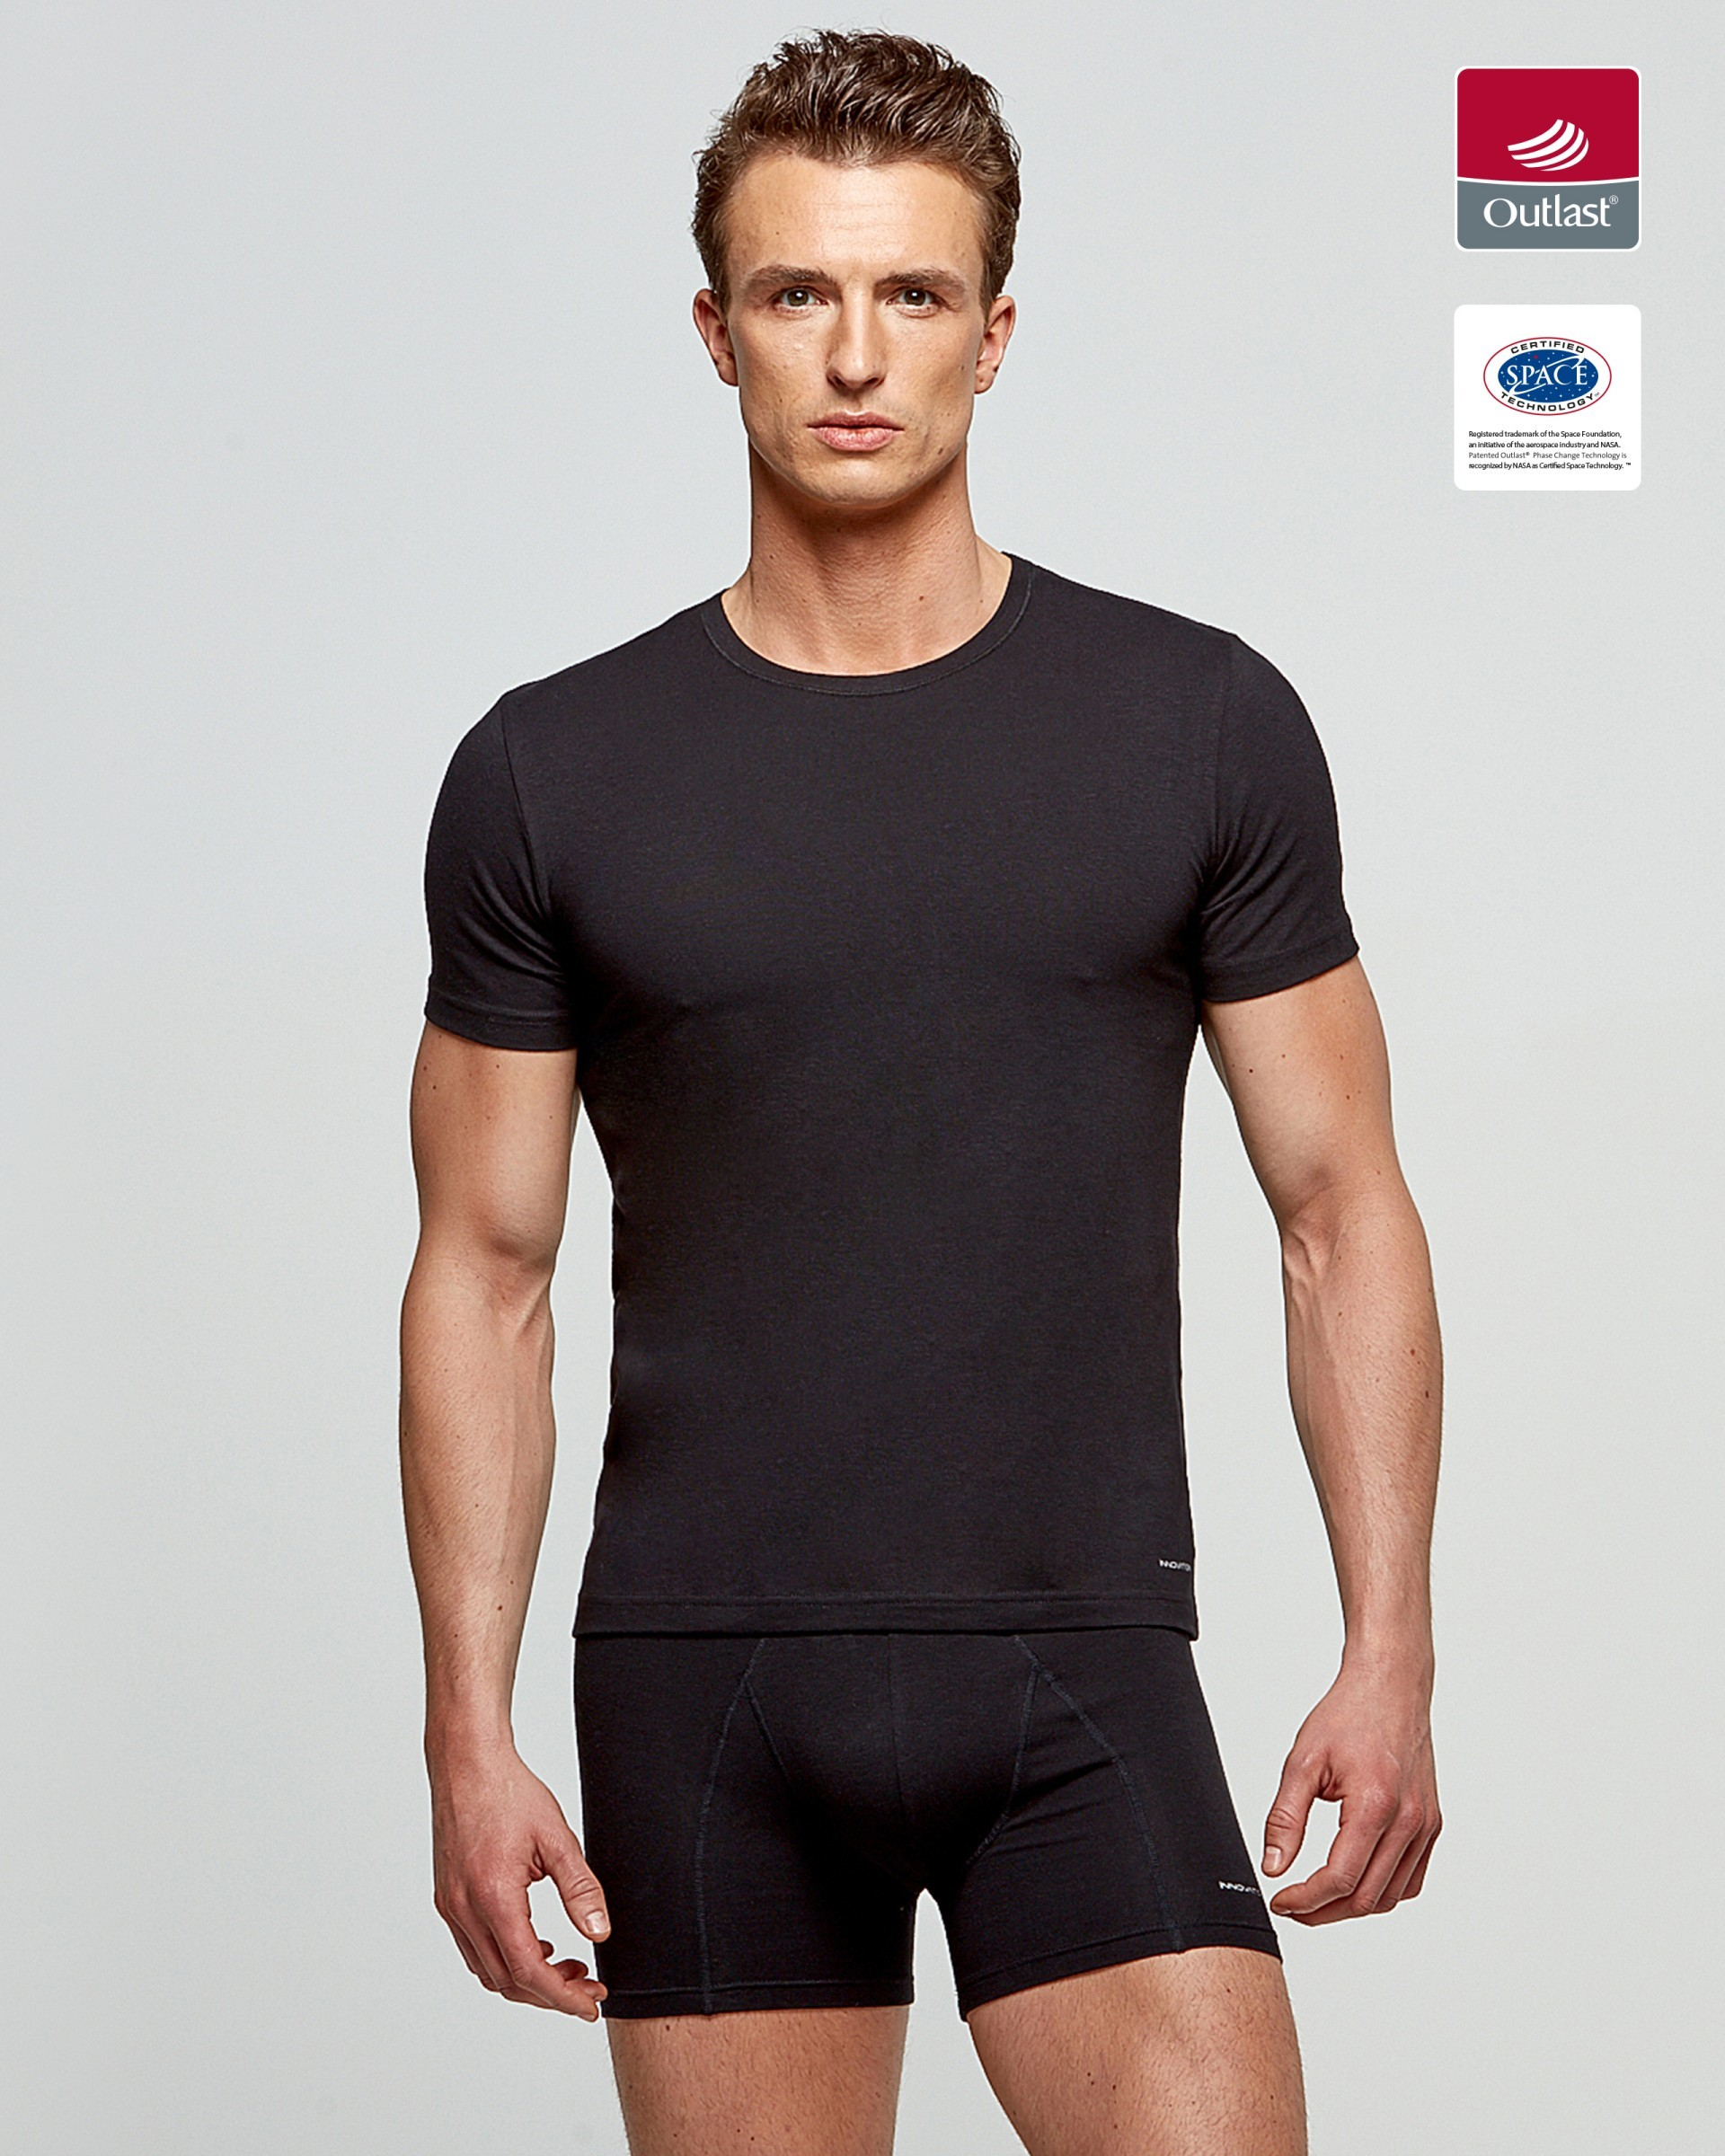 Camiseta de hombre, 1353898, Innovation, Impetus.